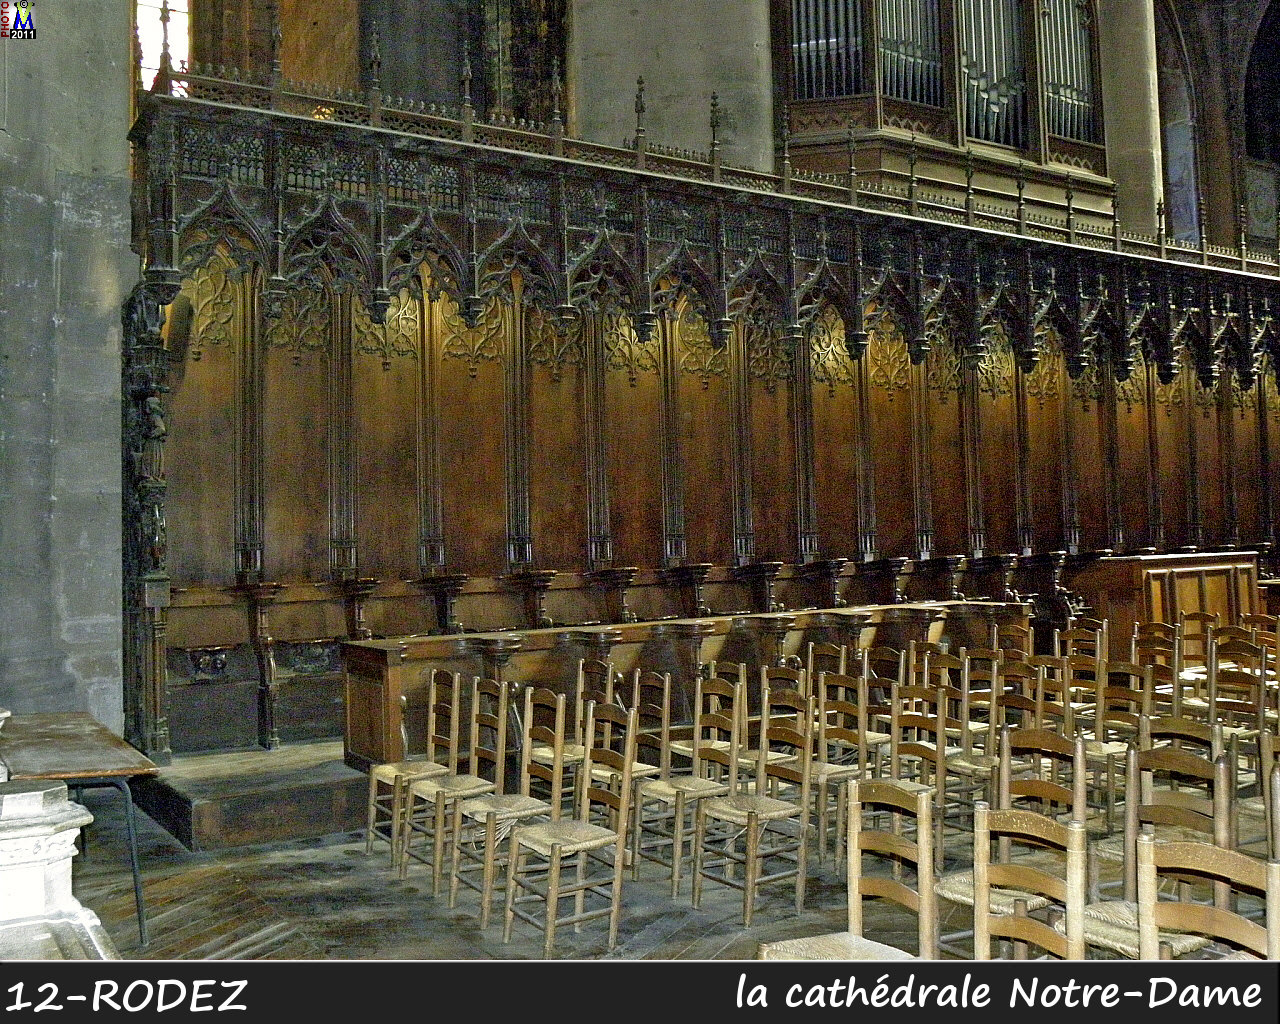 12RODEZ_cathedrale_216.jpg